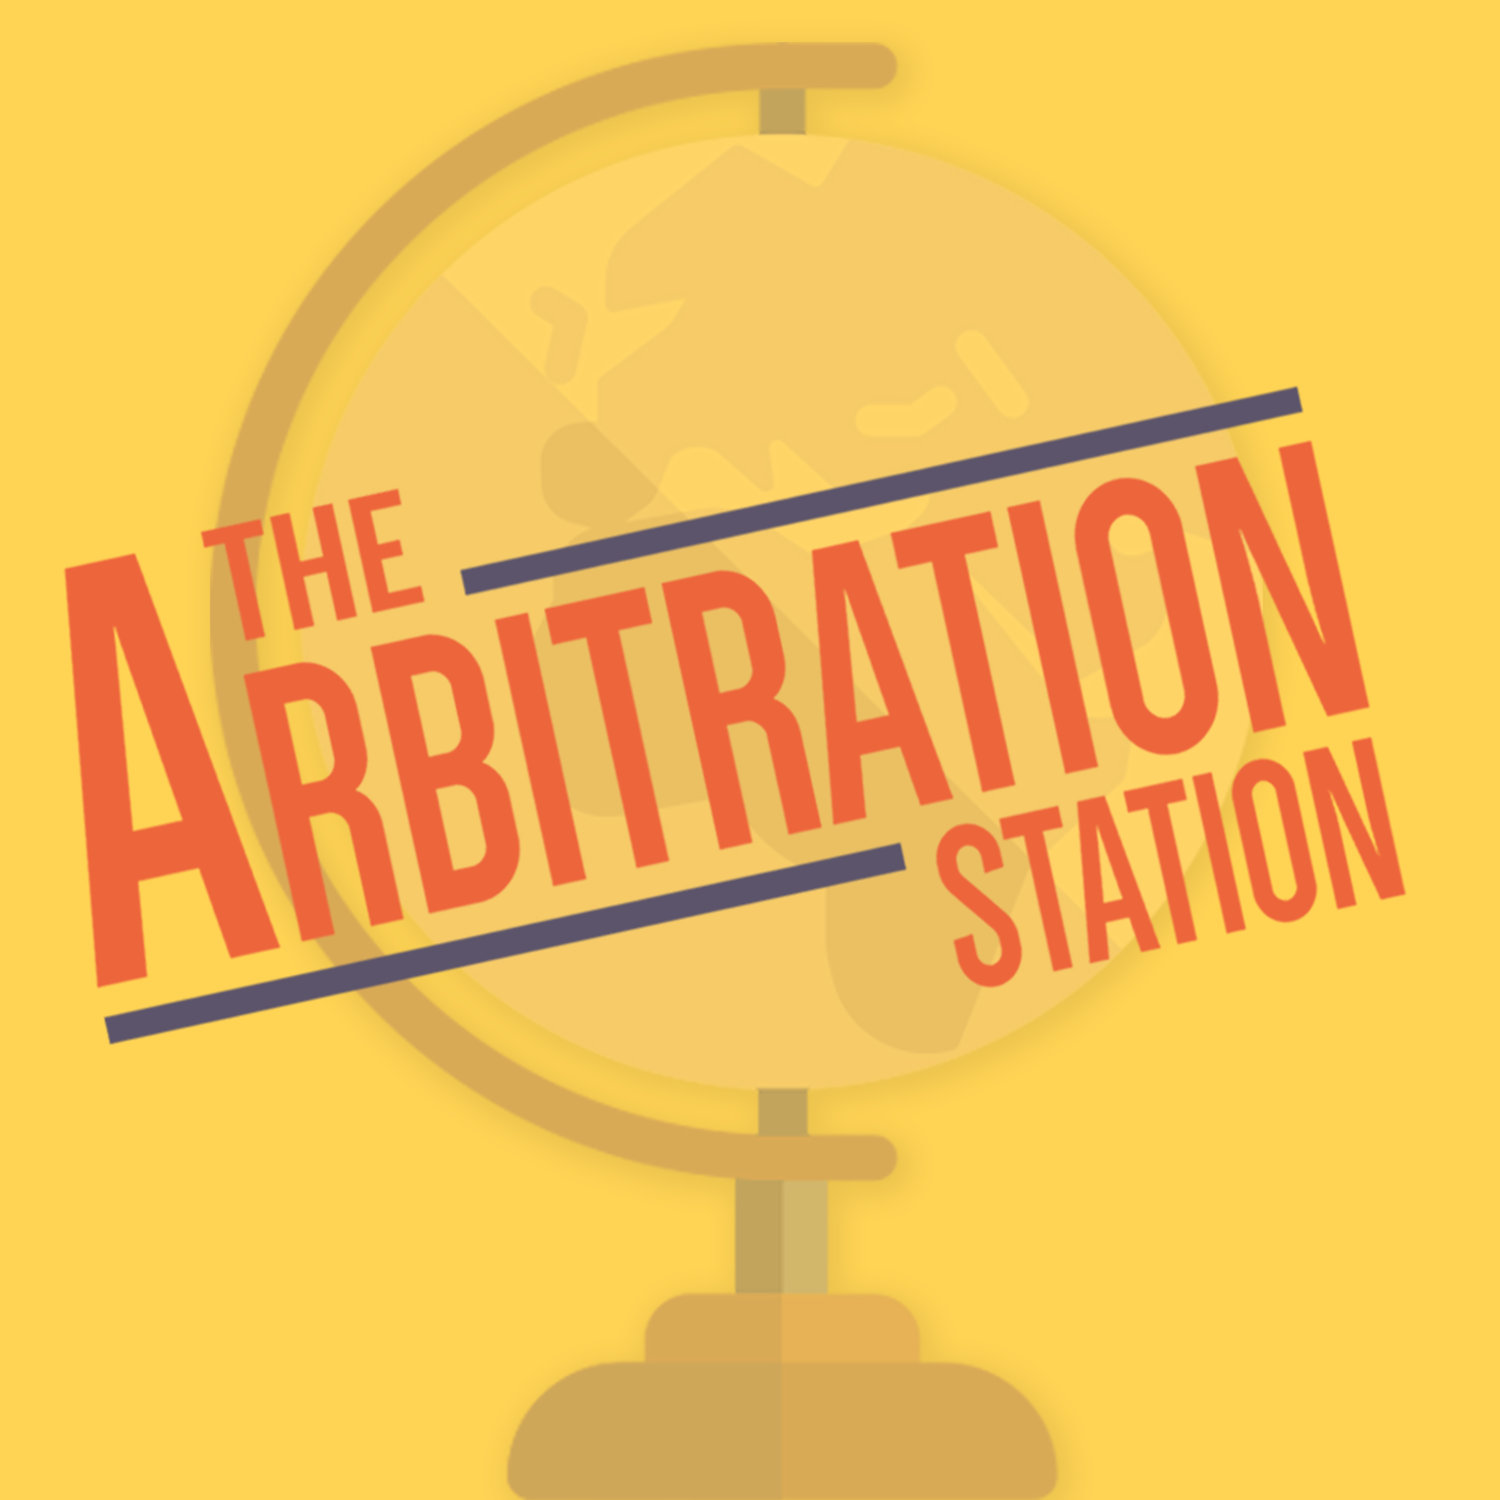 The Arbitration Station